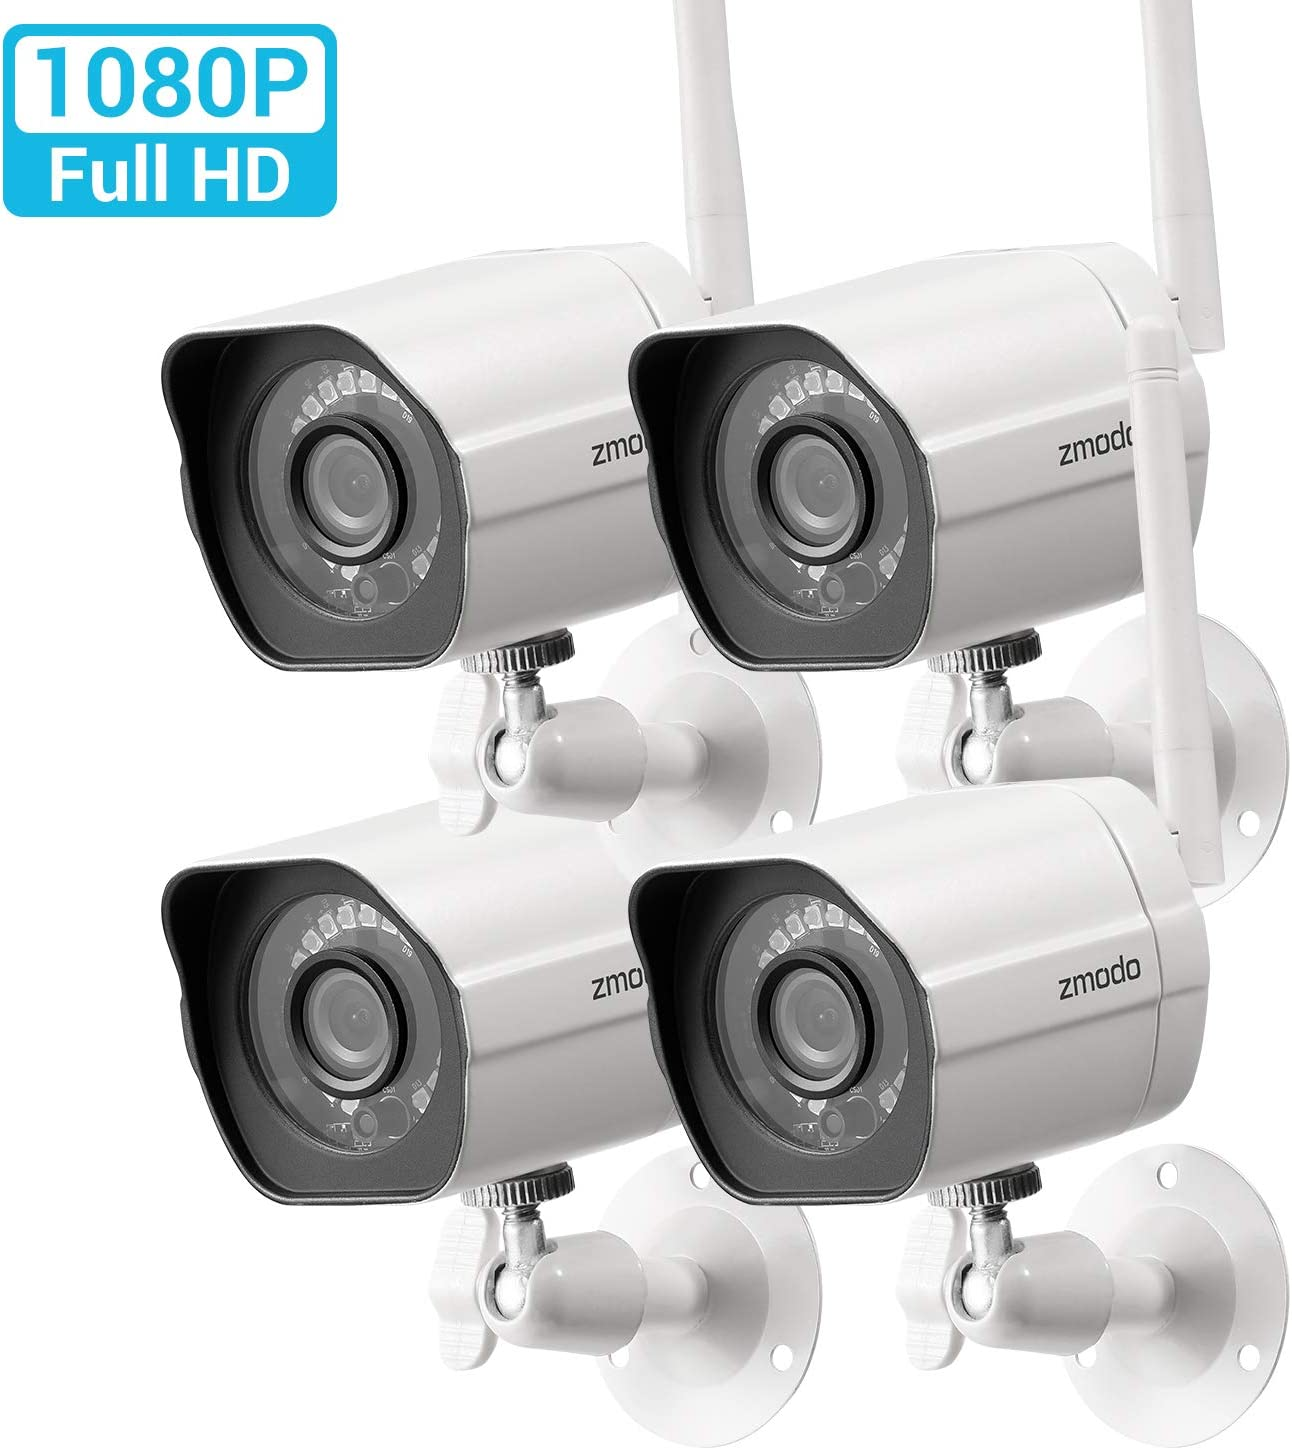 Zmodo Smart Wireless Security Camera System- 4 Pack- HD Indoor/Outdoor WiFi IP Cameras with Night Vision Easy Remote Access - Cloud Service Available